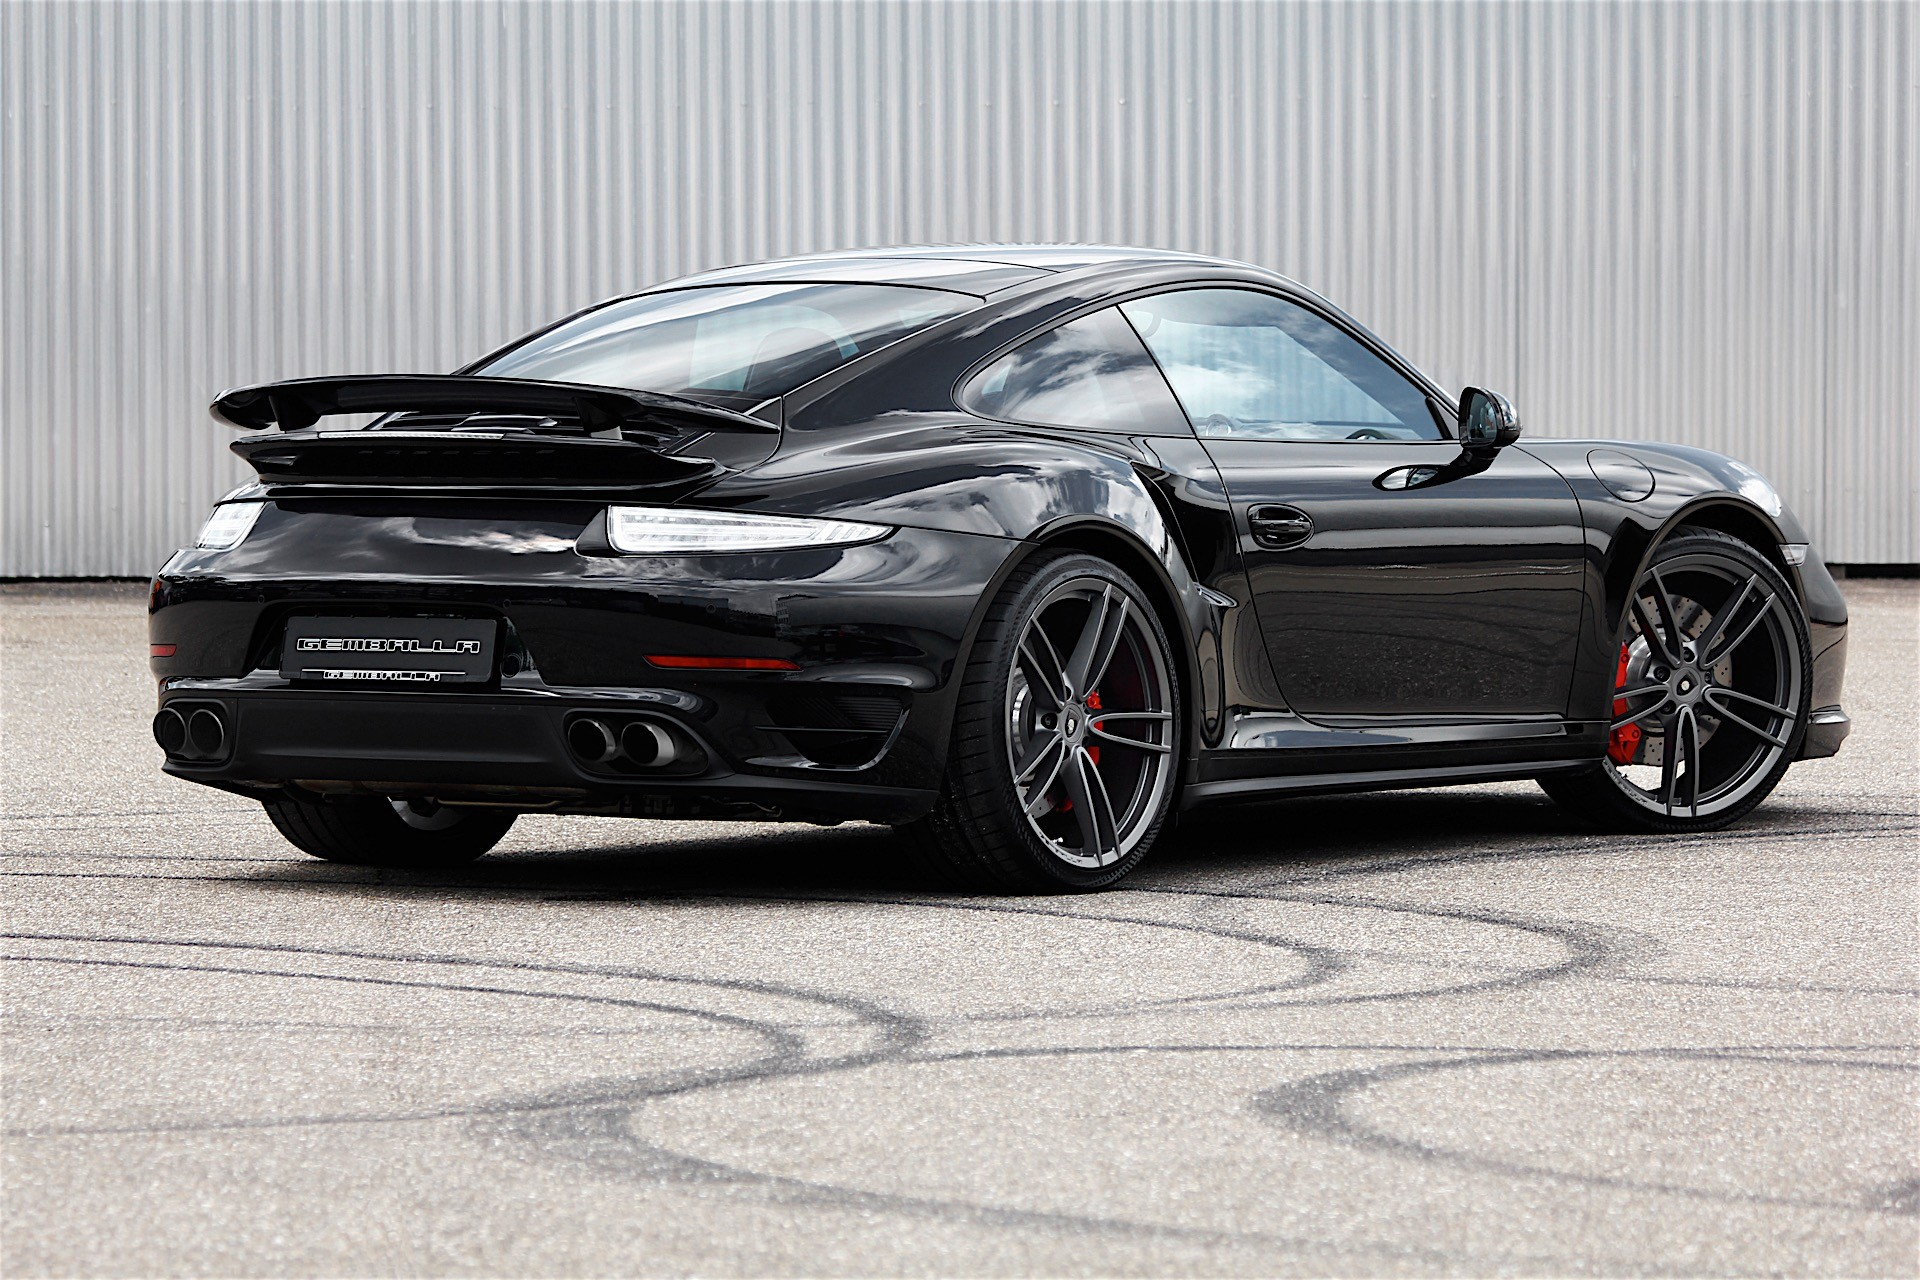 gemballa releases performance exhaust system for porsche 911 turbo autoevolution. Black Bedroom Furniture Sets. Home Design Ideas